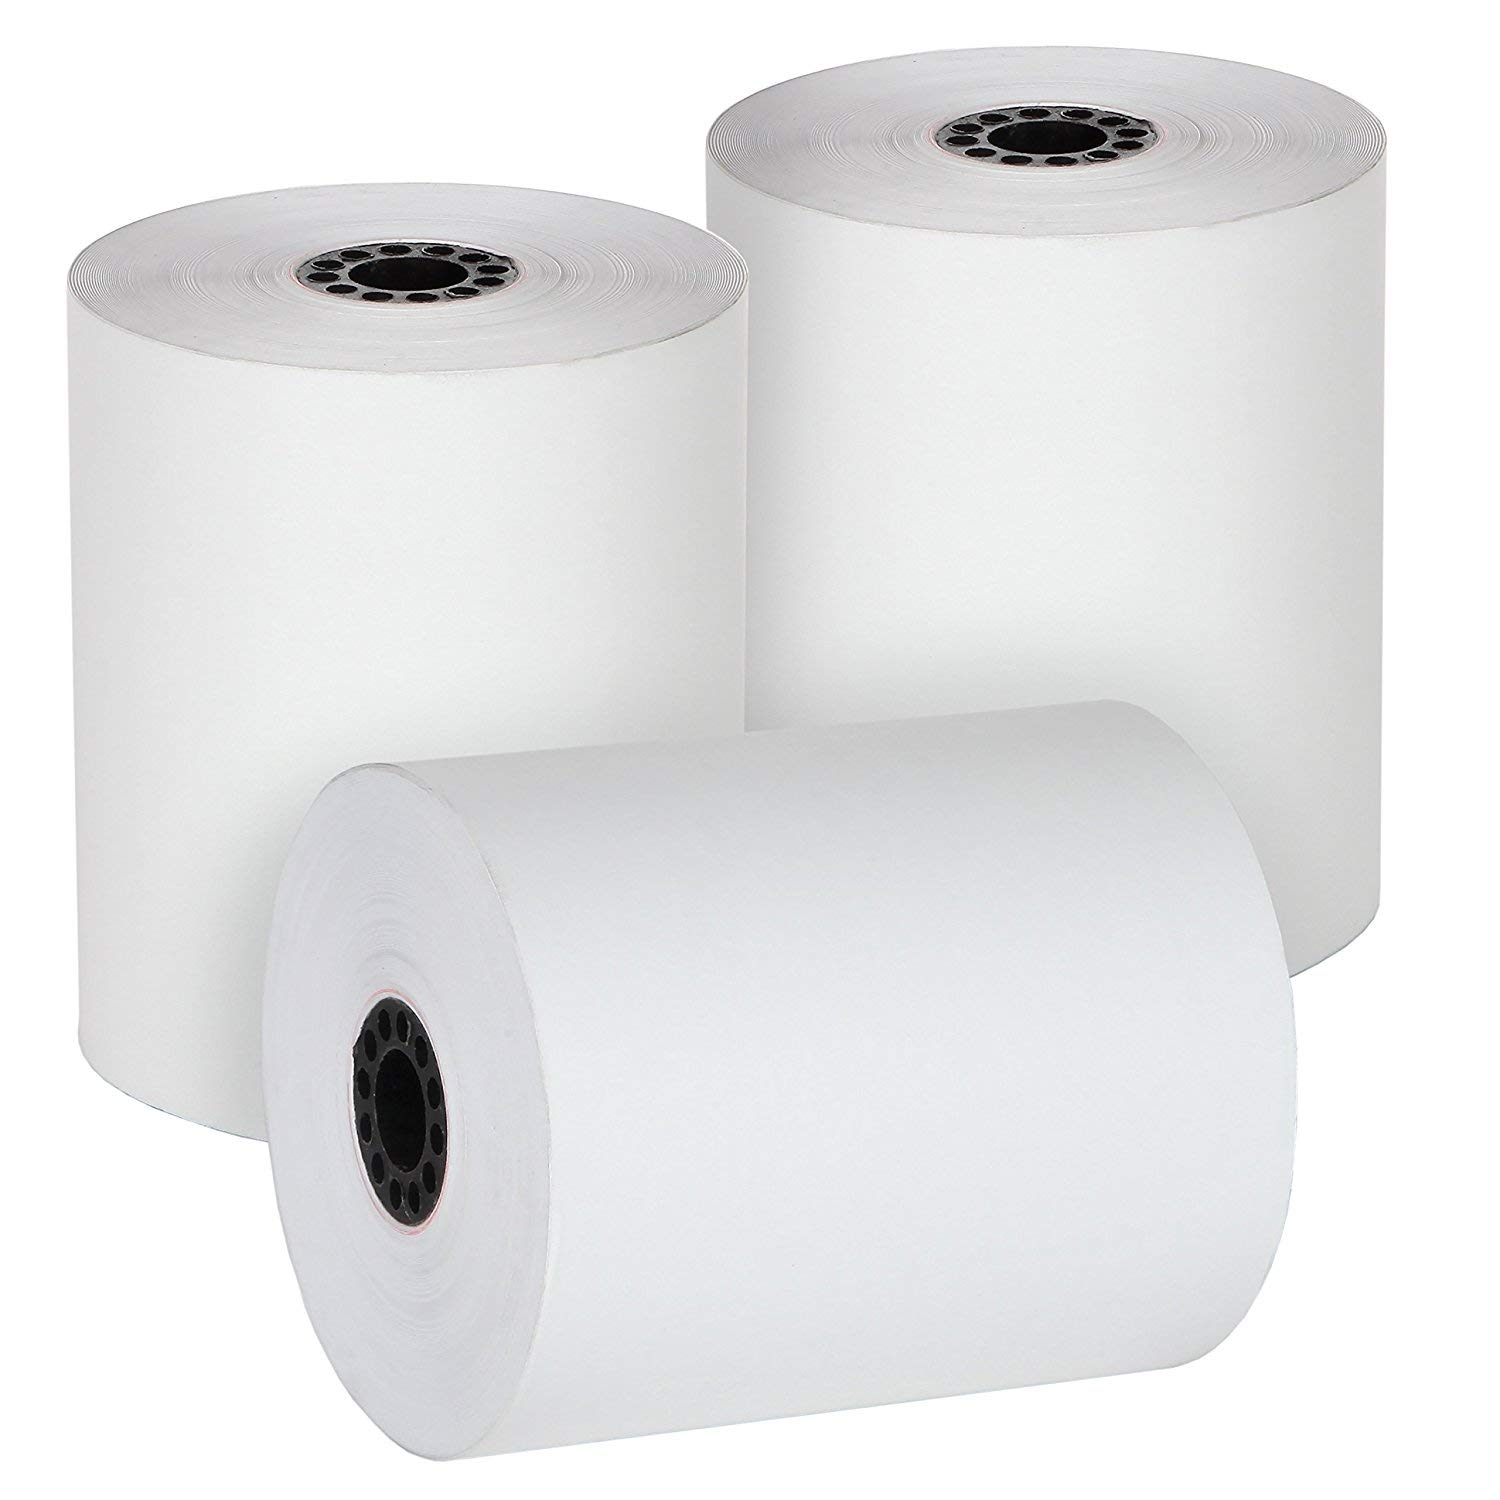 FHS Retail Thermal Paper Cash Register Rolls, 3 1/8 x 230', 50 Rolls In Case, Made in USA/Canada